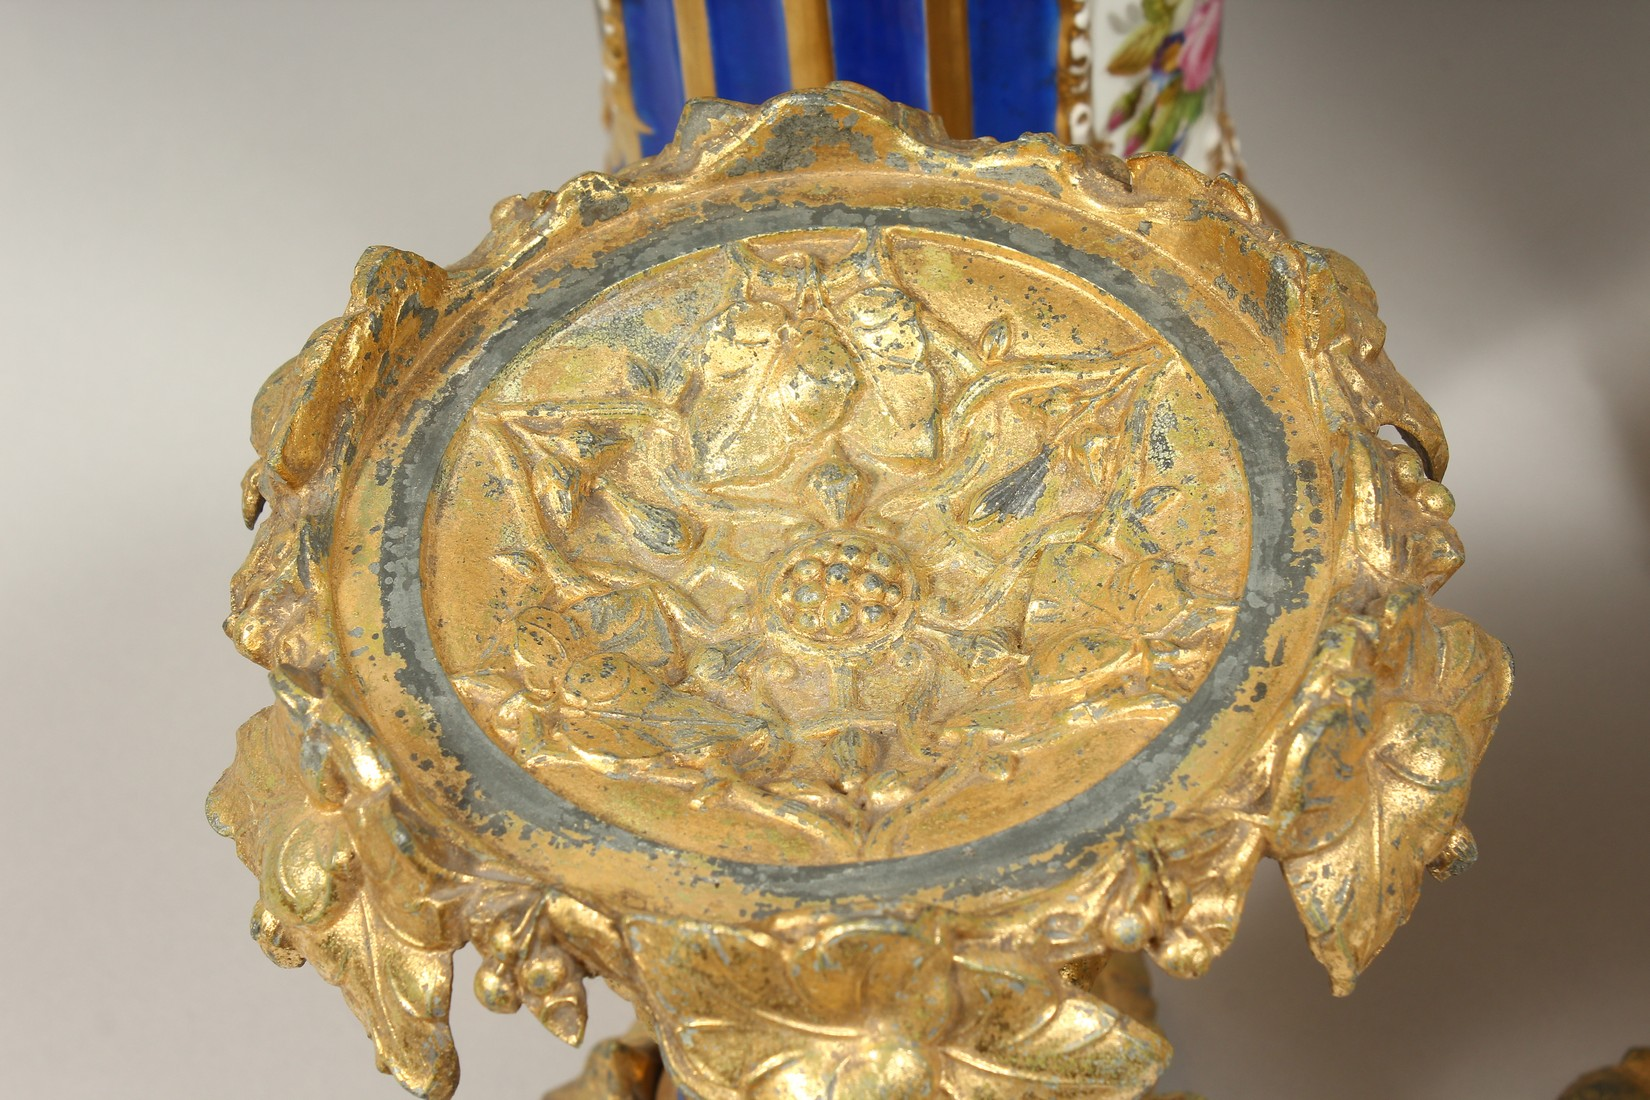 A SUPERB PAIR OF 19TH CENTURY FRENCH PORCELAIN AND GILT BRONZE LAMPS ON STANDS, painted with - Image 22 of 24